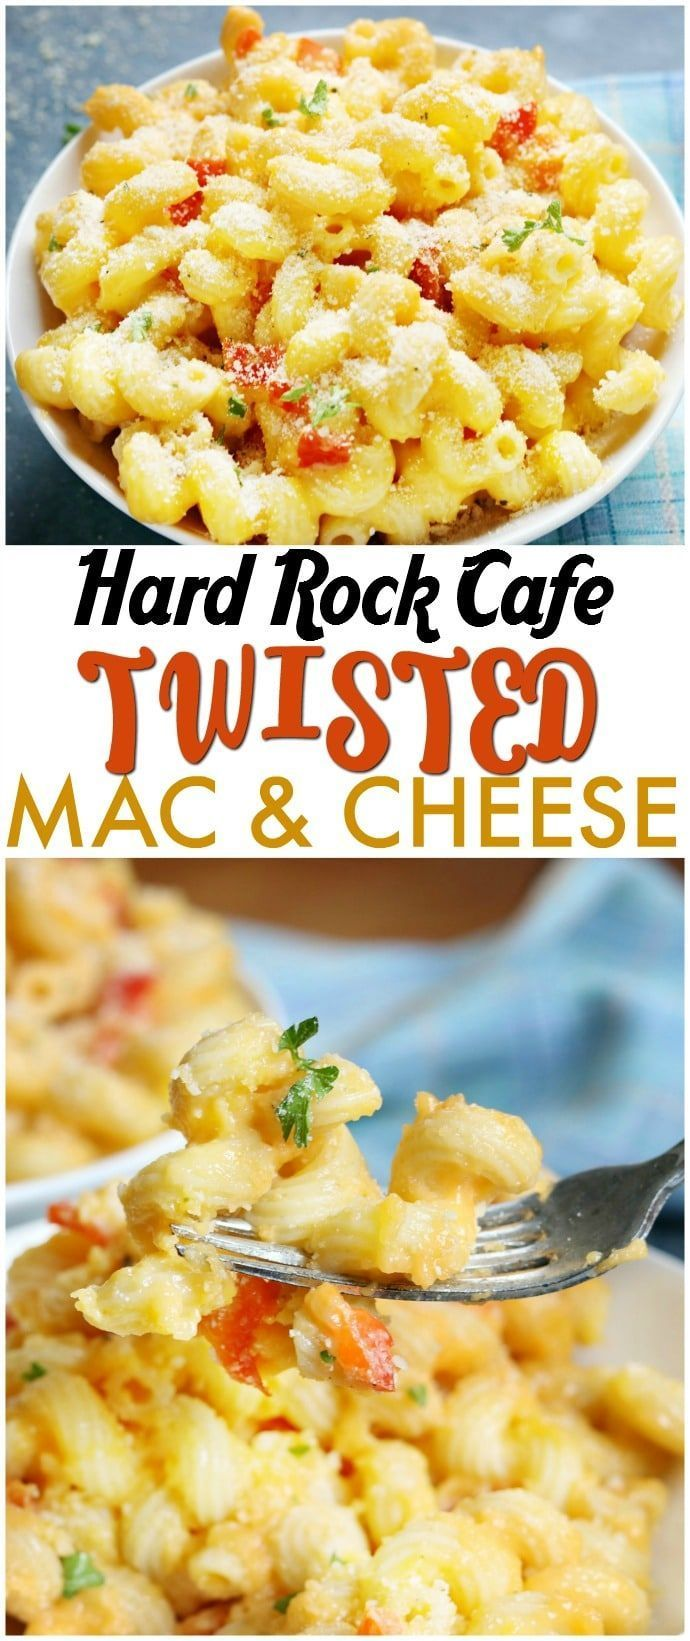 Hard Rock Cafe Twisted Mac & Cheese is cavatappi pasta tossed in a slightly spicy cheese sauce with roasted red peppers and topped with Parmesan parsley breadcrumbs. A copycat version of a favorite restaurant dish! | www.persnicketyplates.com